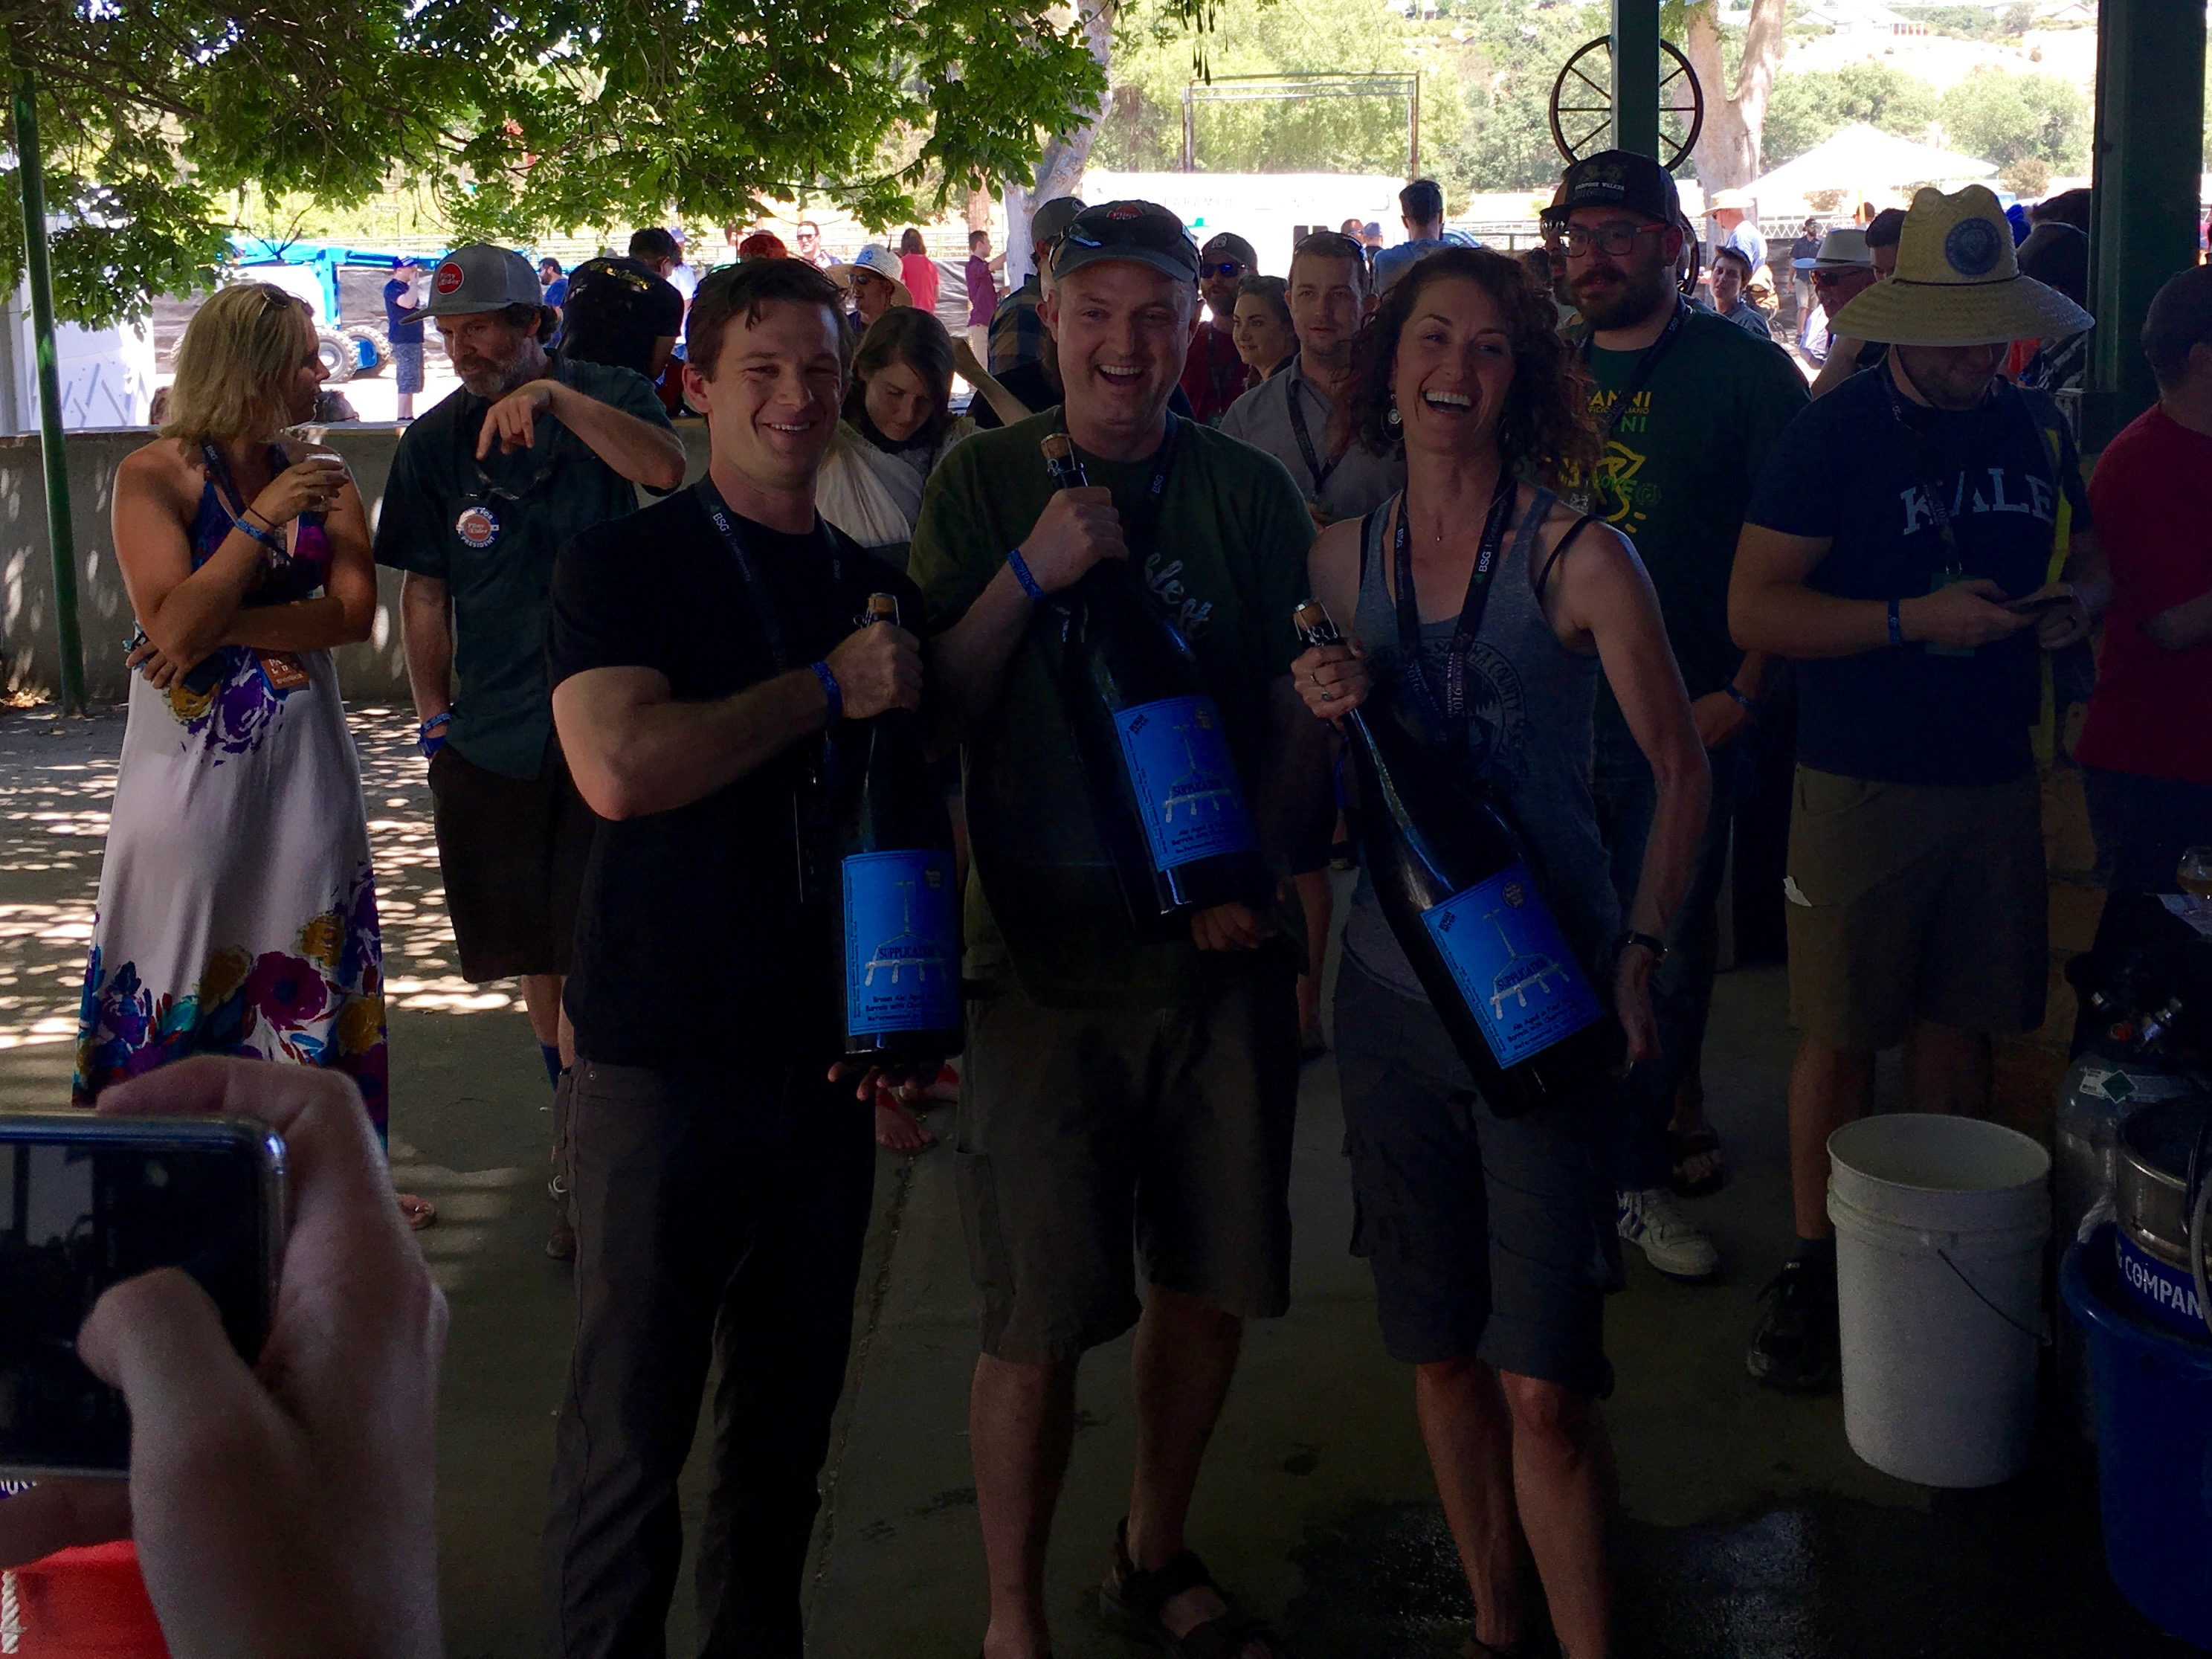 Russian River Brewing poses with a few 6 liter bottles of 2009 Russian River Supplication during the 2016 Firestone Walker Invitational Beer Fest.